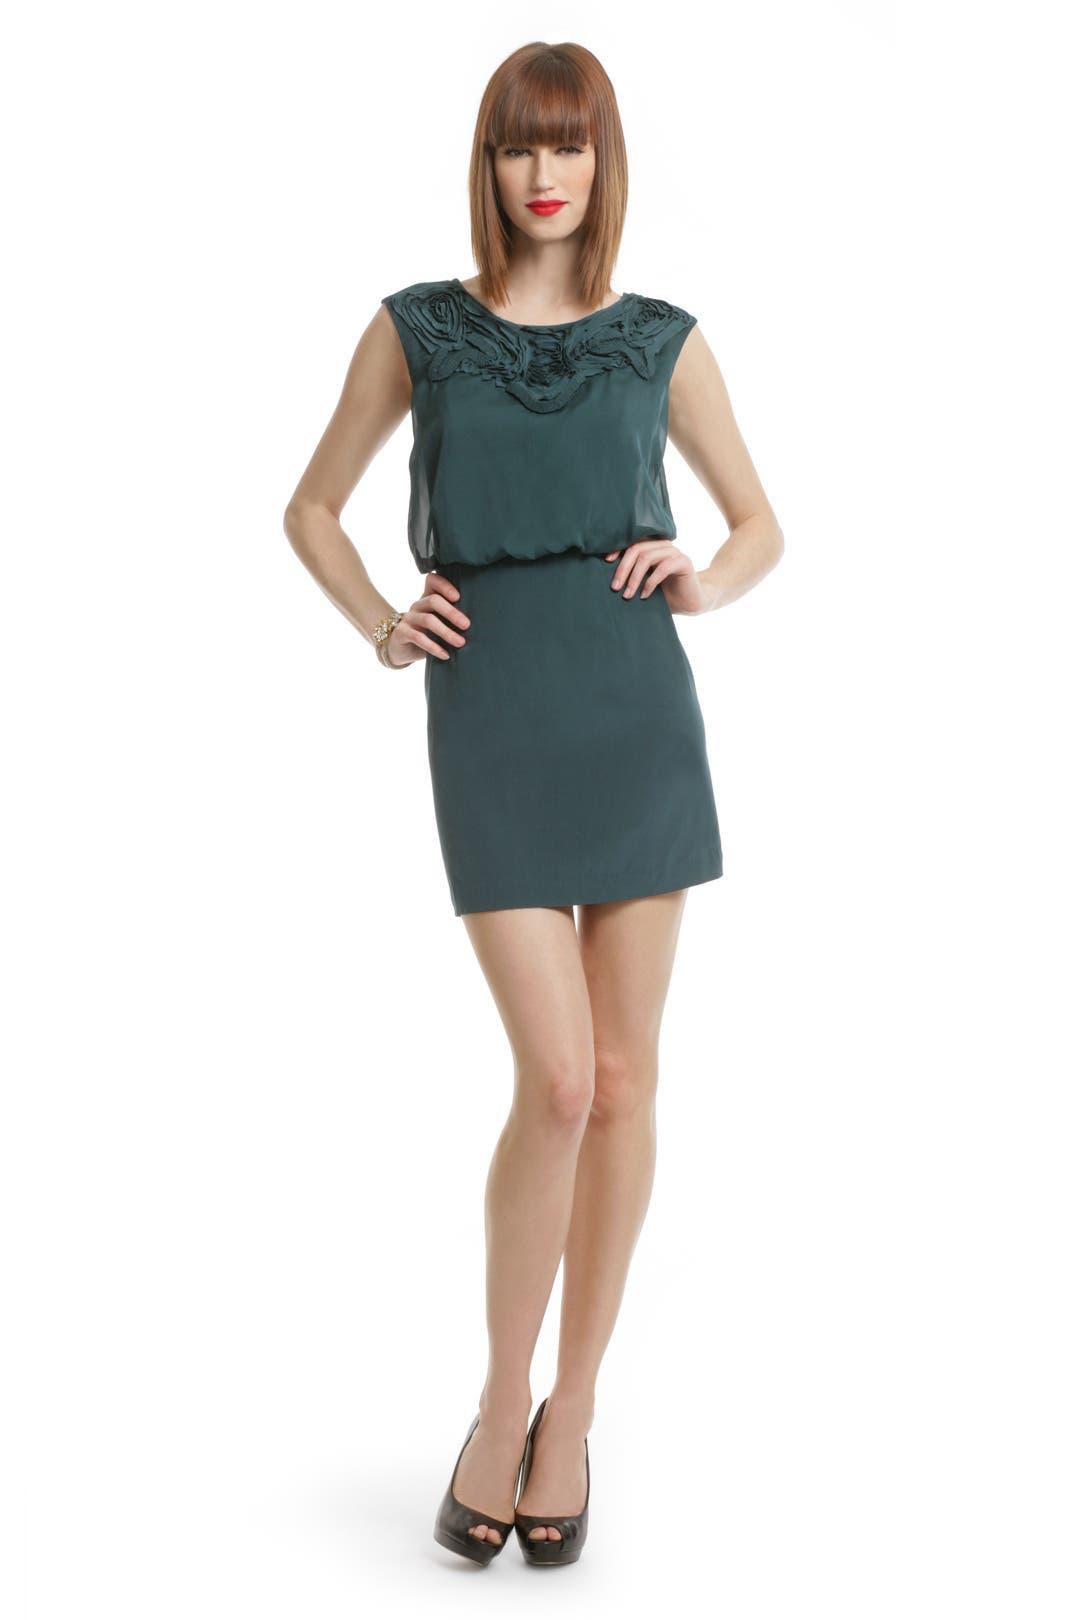 Teal Applique Bloussant Dress by Tibi